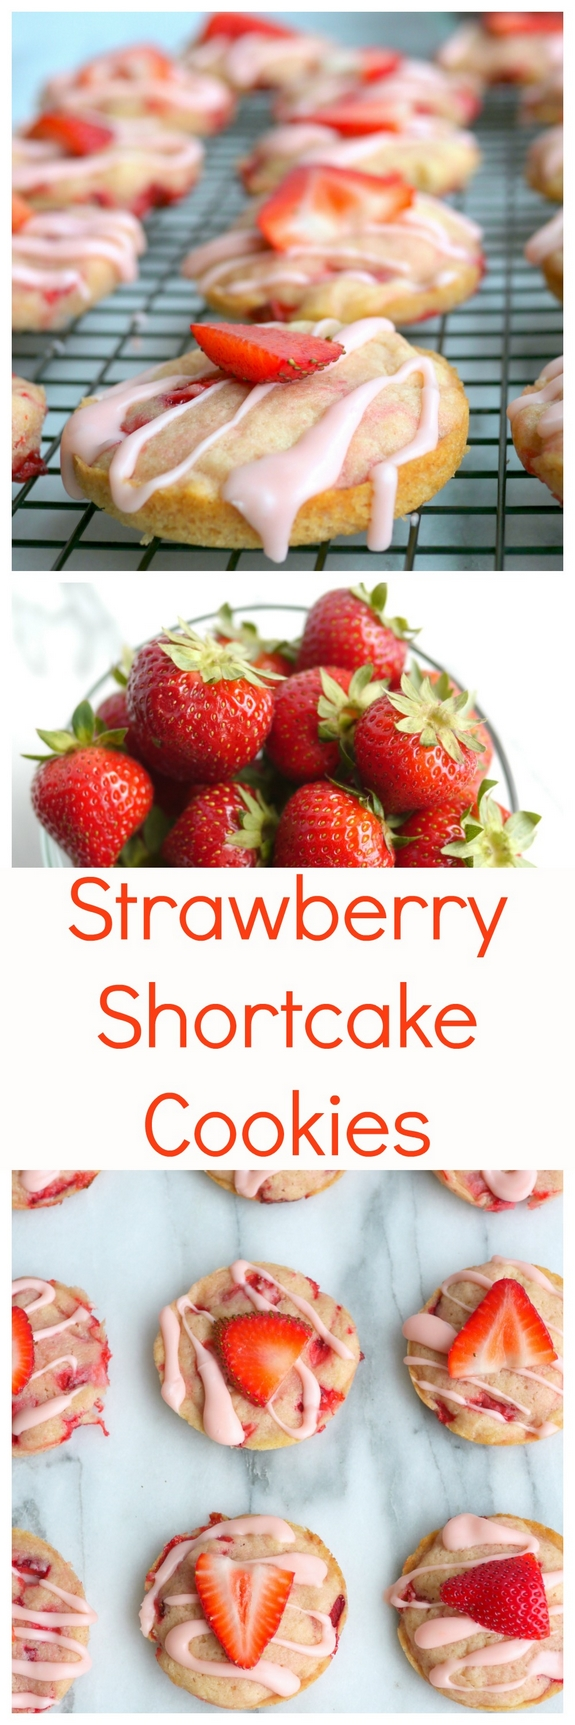 Soft Baked Strawberry Shortcake Cookies | Noble Pig